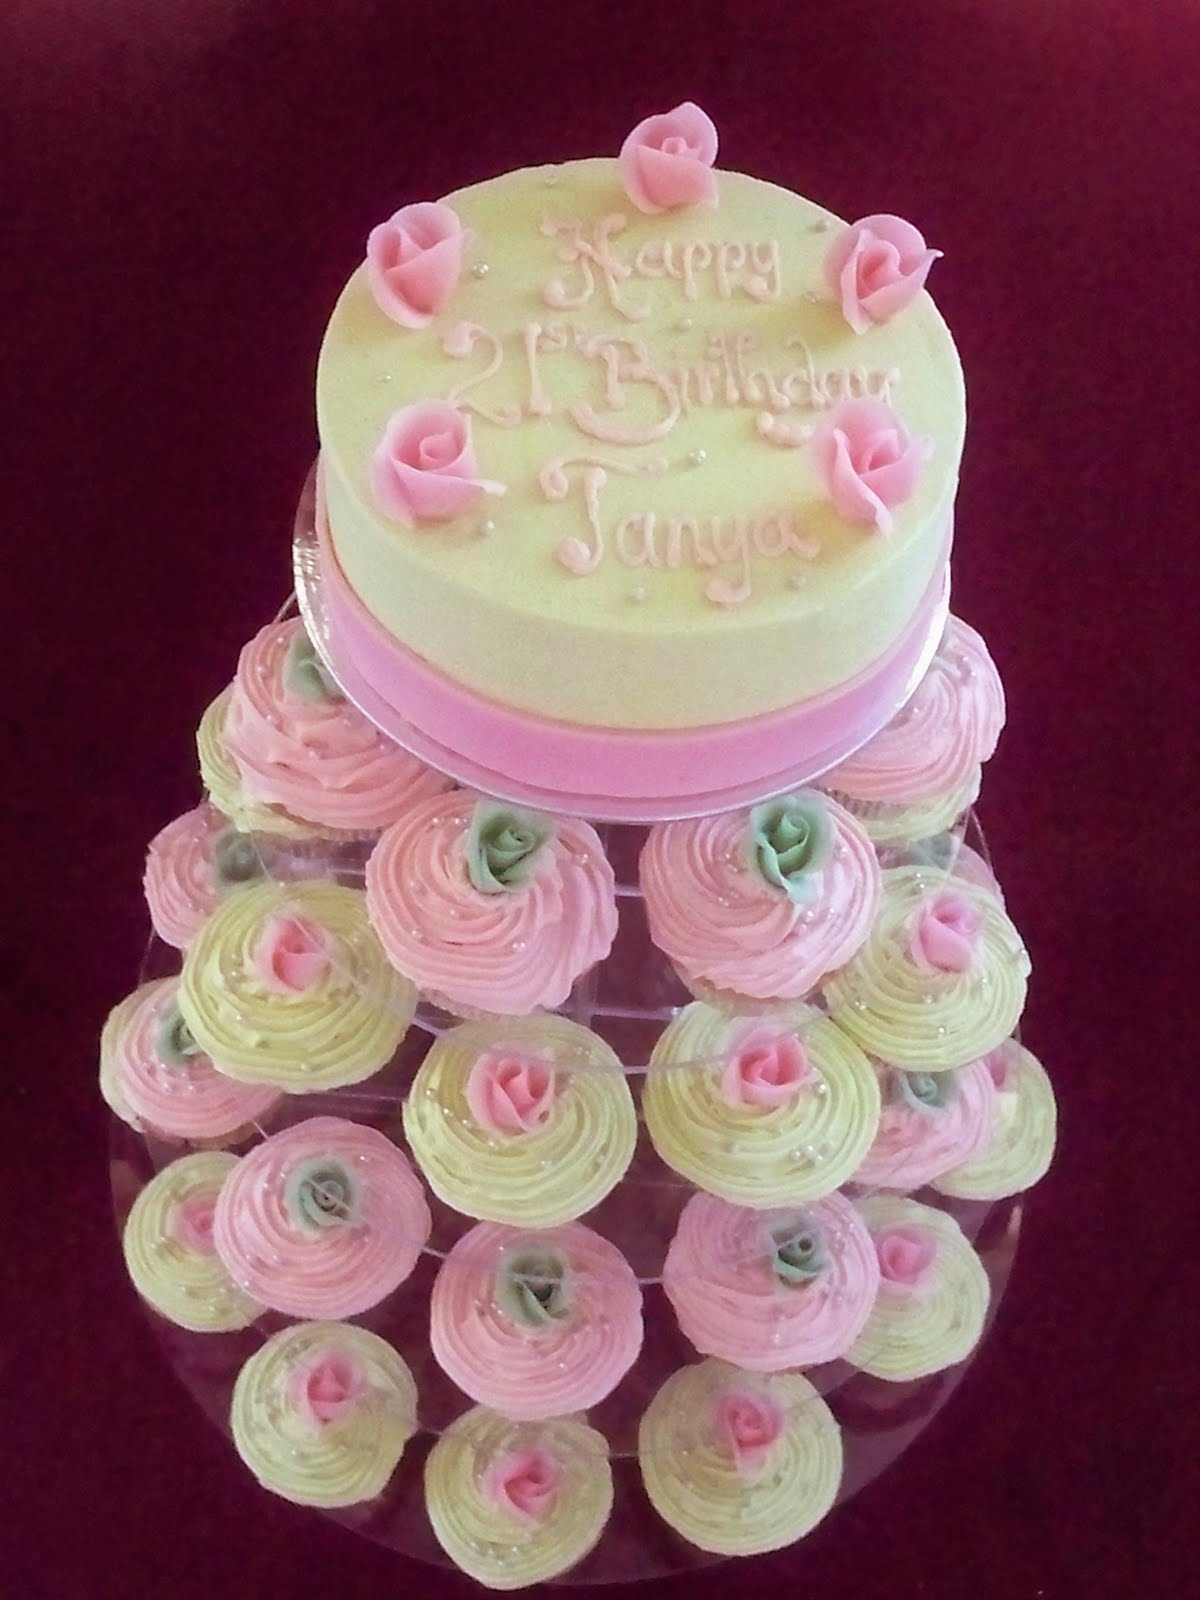 cup cake tower for Birthdays or weddings | Elisabeth\'s Wedding Cakes